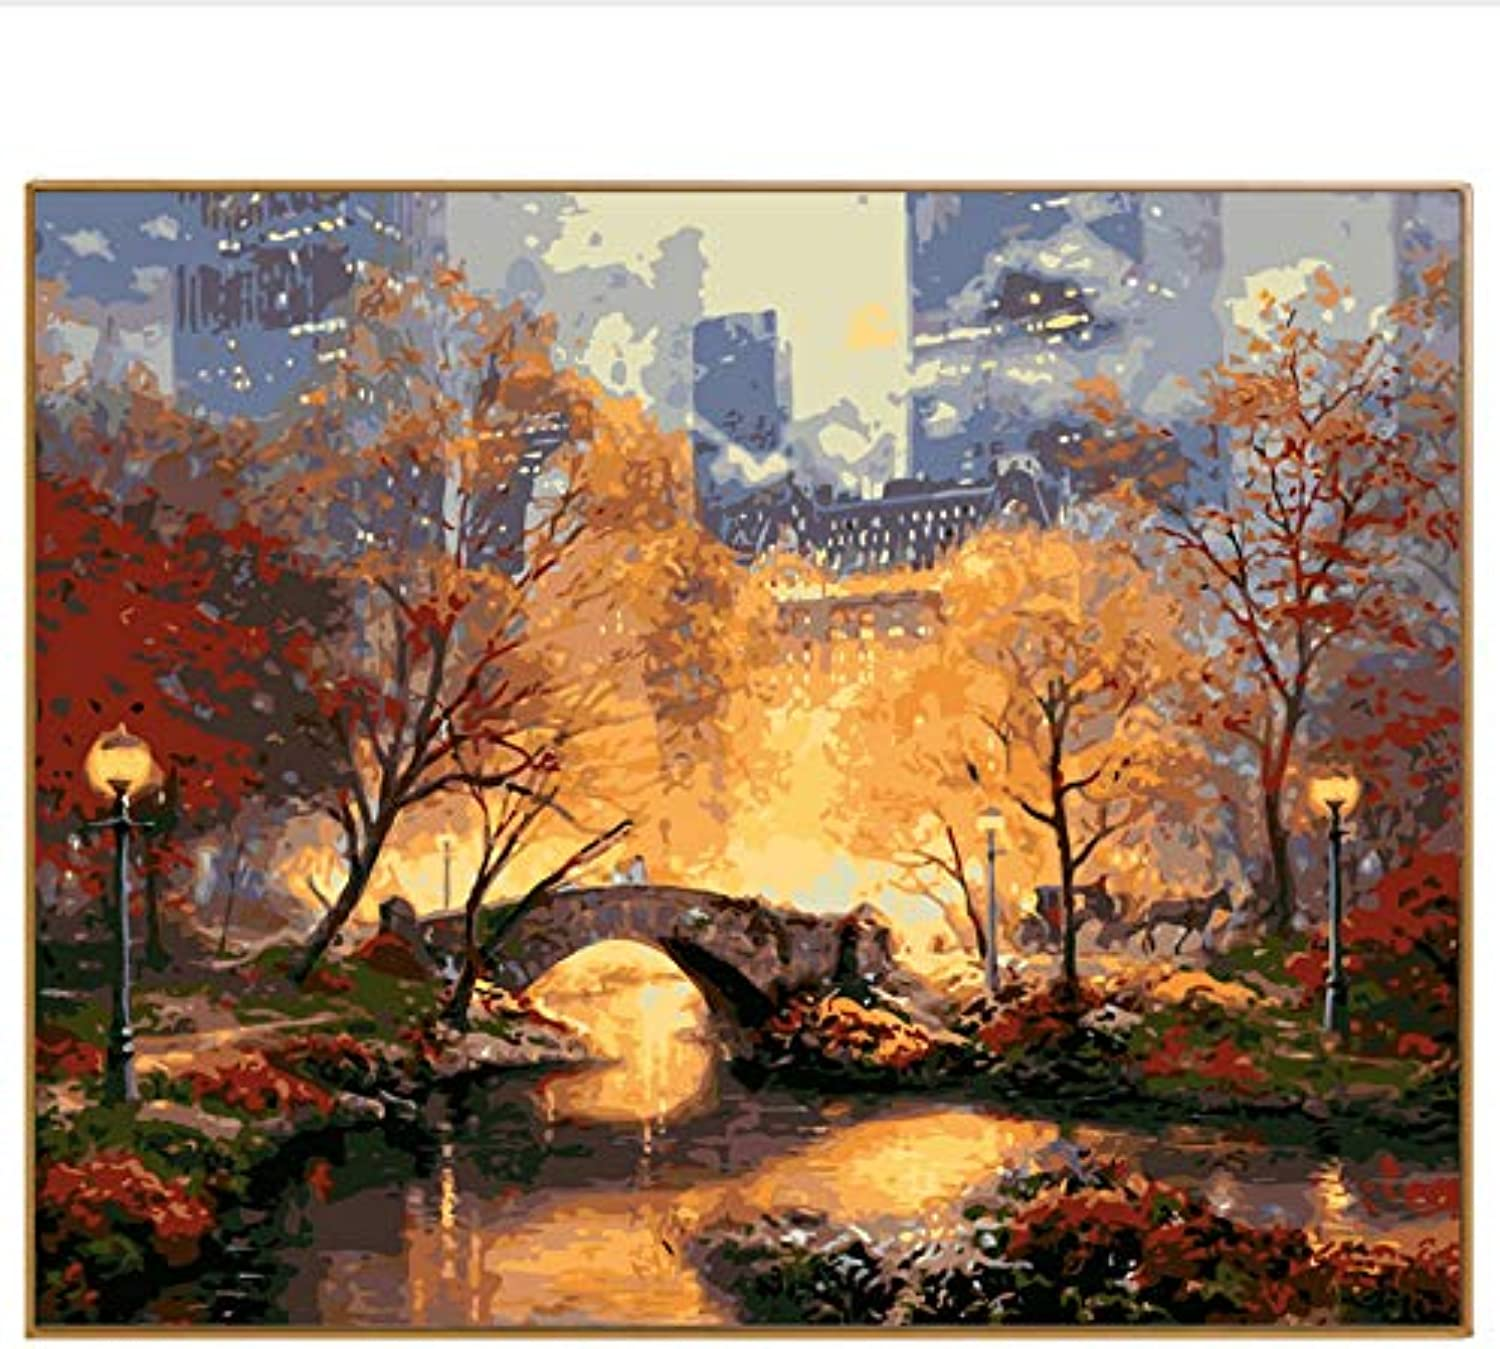 DIY Modern Landscape Manhattan Park Oil Painting By Numbers Digital Picture Hasp Painted coloring On Canvas For Home Decor, Framed, 50x60cm